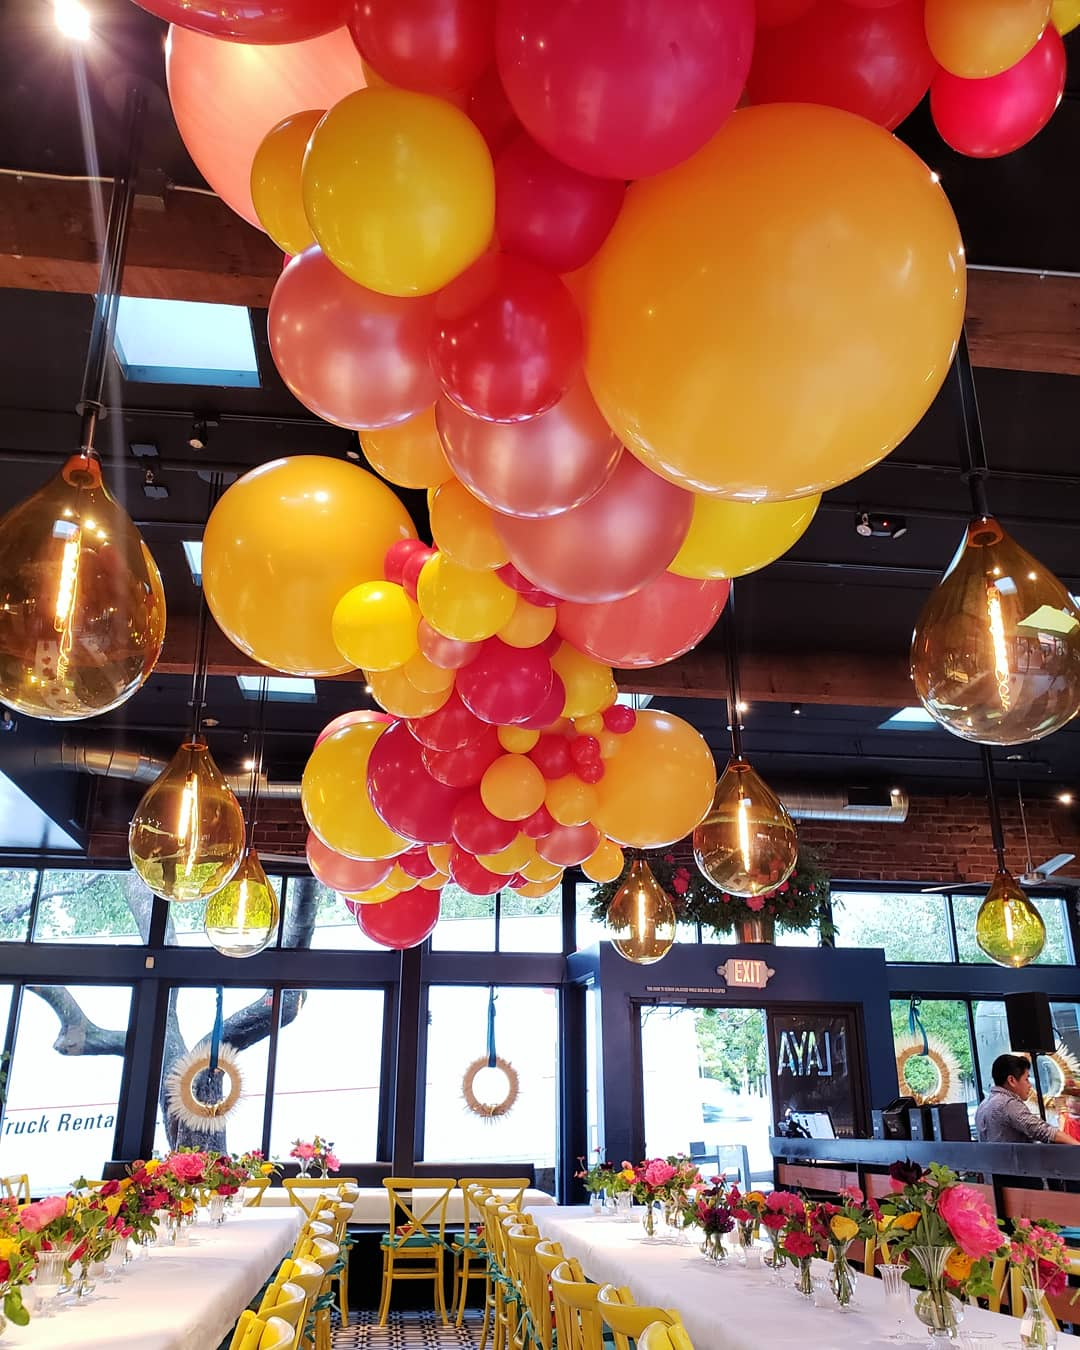 Mill Valley Party Balloons - Balloon Cloud Ceiling  Garland - Zim Balloons.jpg